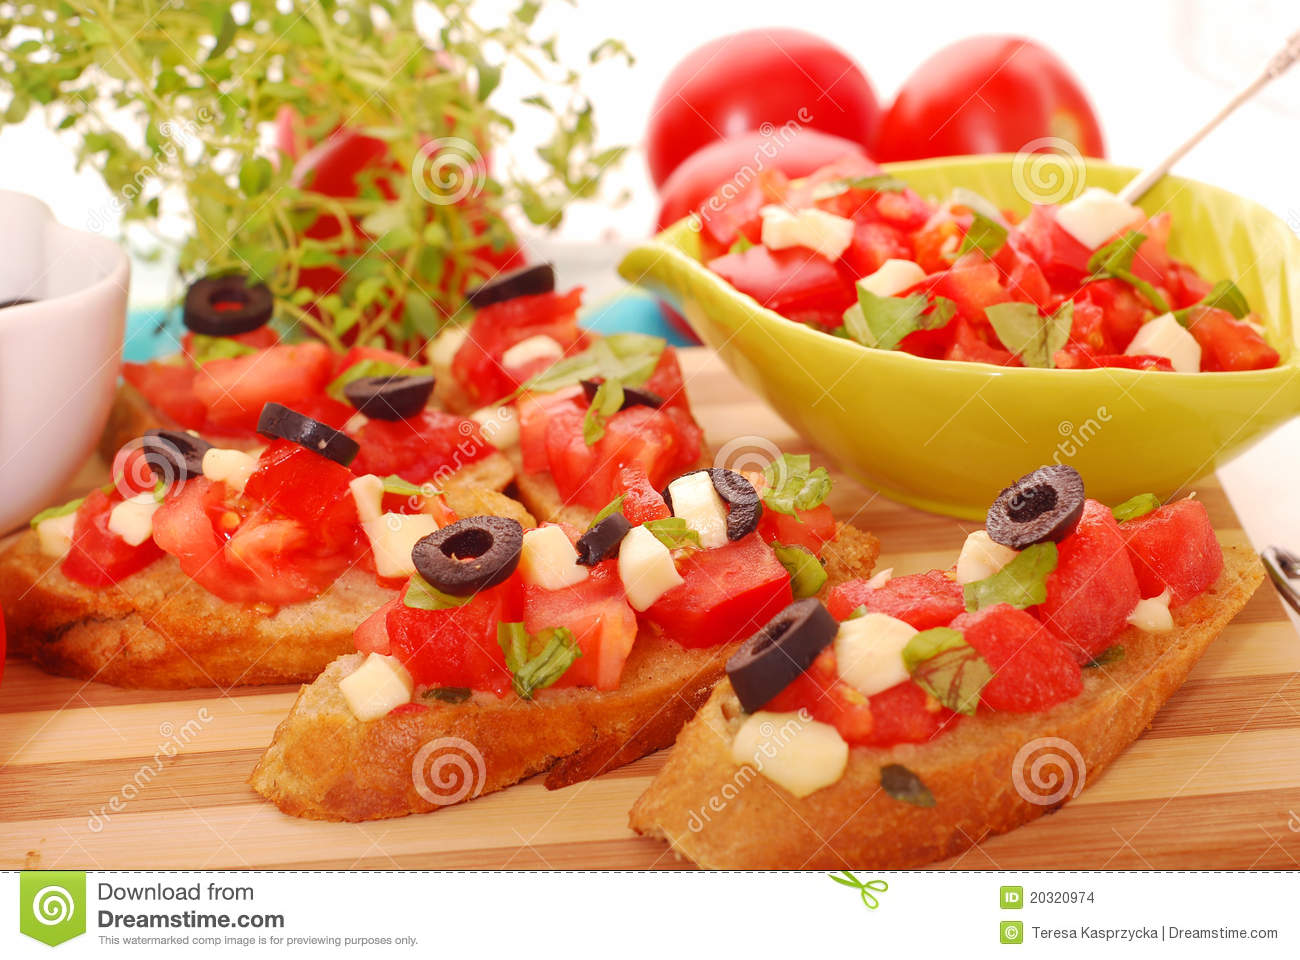 ... bruschetta with fresh tomato,basil,mozzarella and black olives